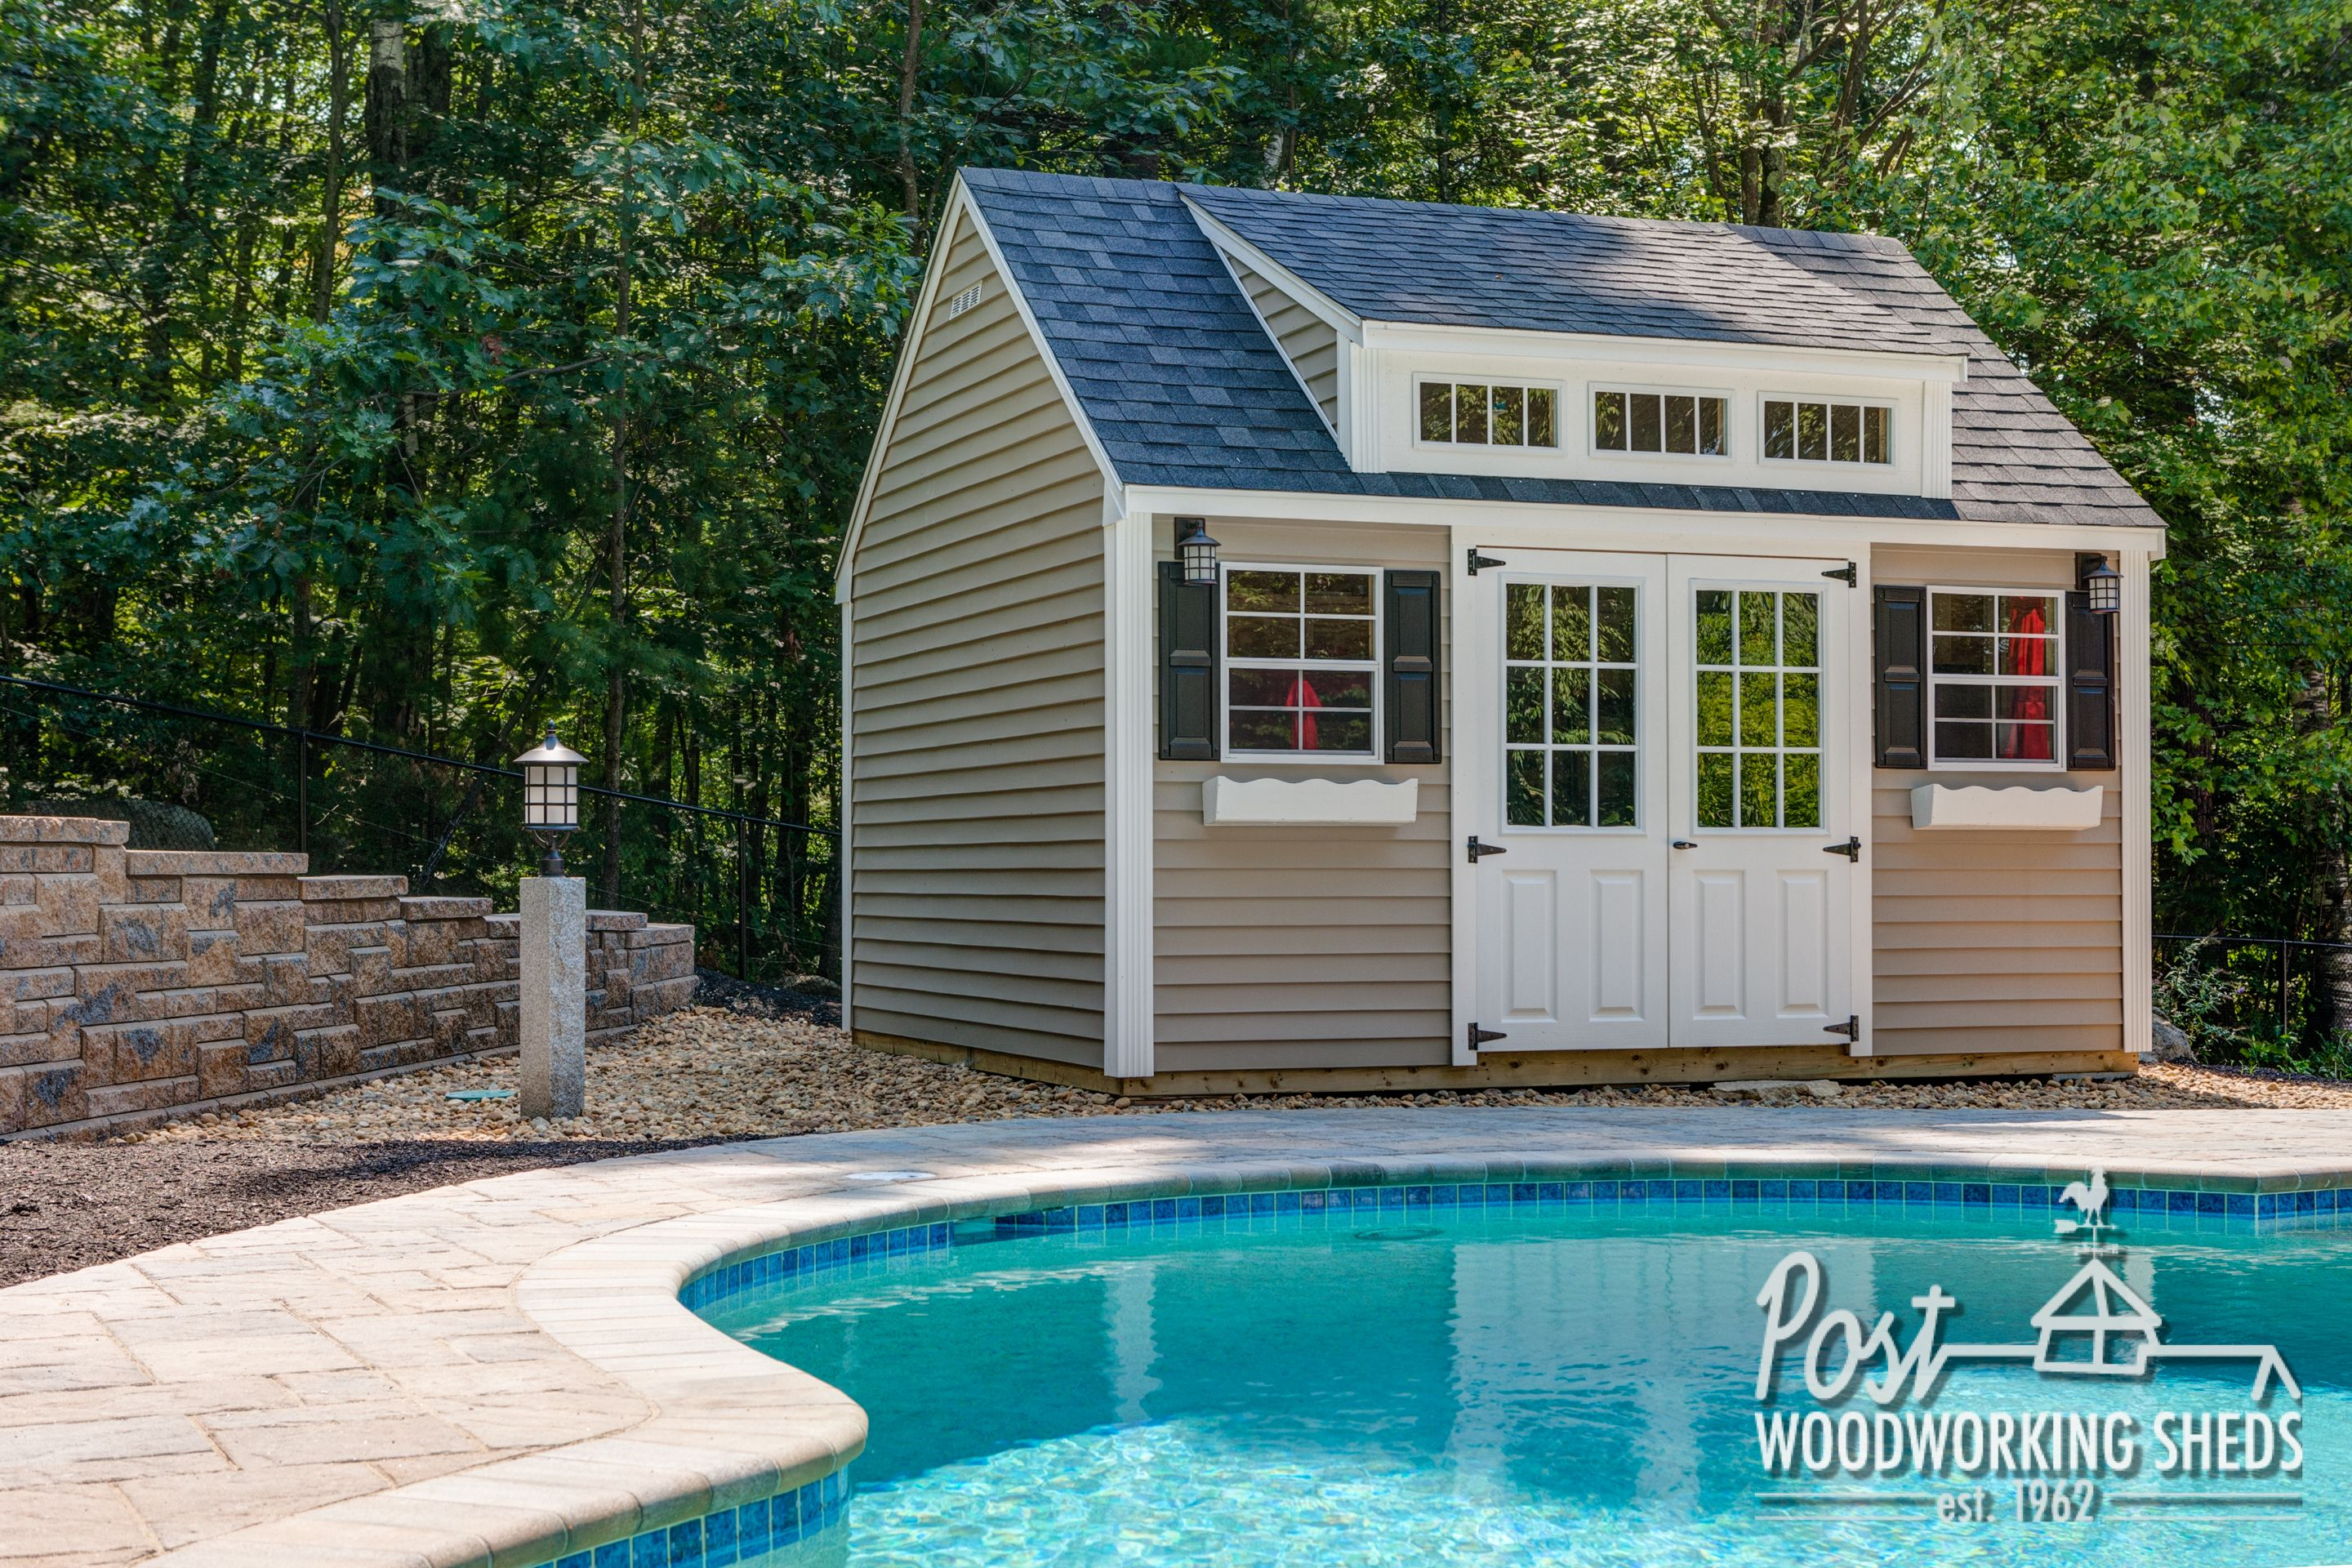 Pool shed ideas joy studio design gallery best design for Pool house shed plans